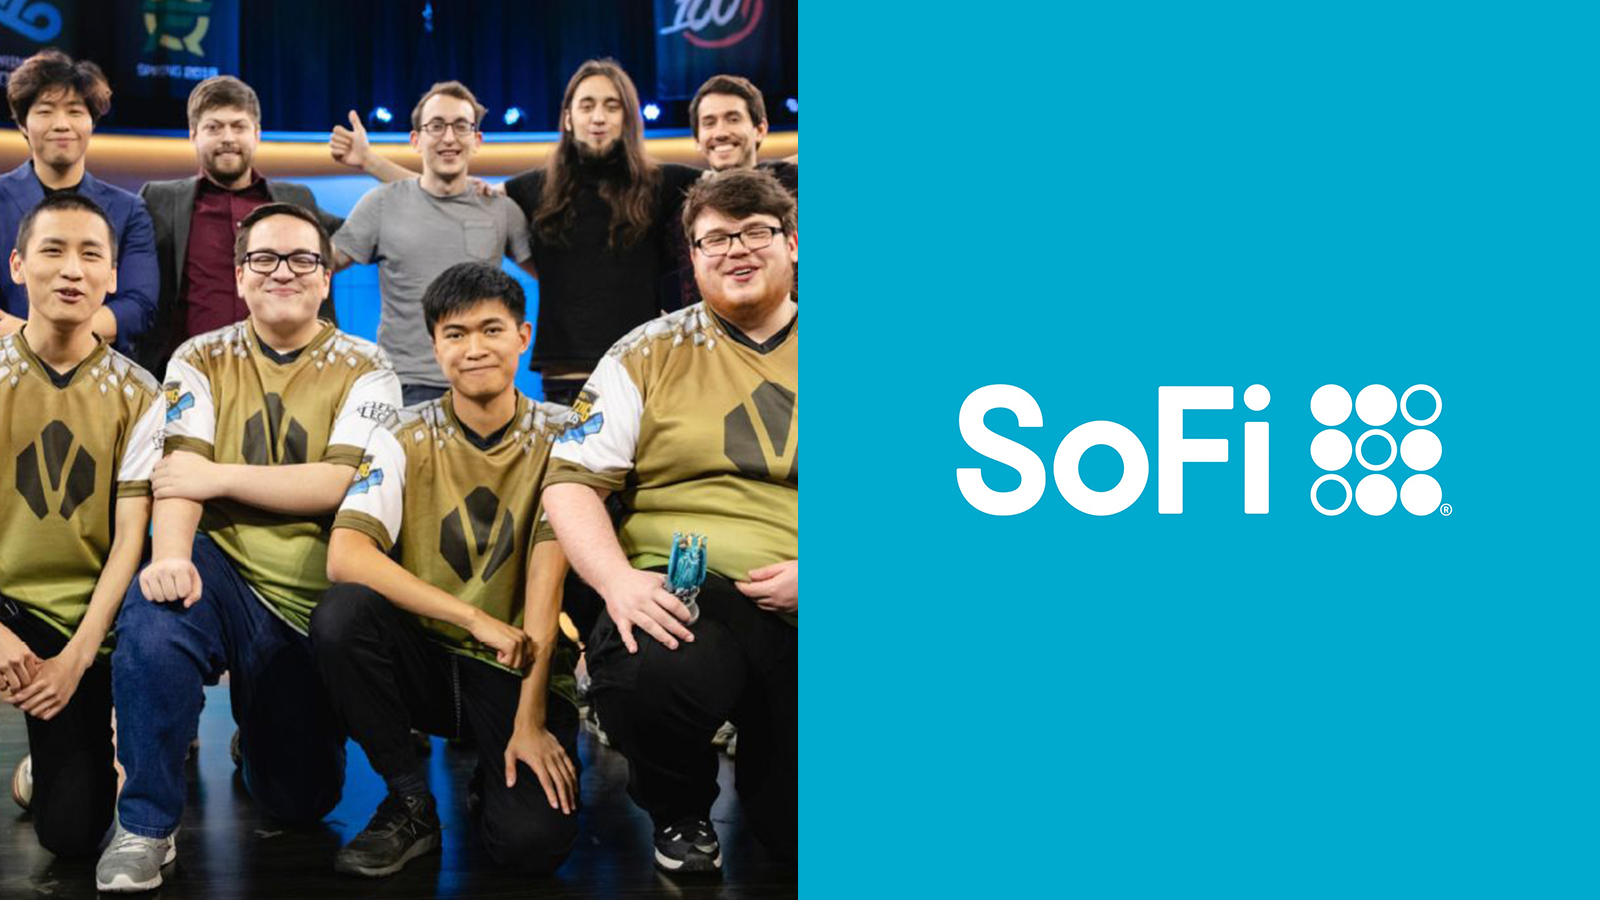 SoFi LCS Scouting Grounds